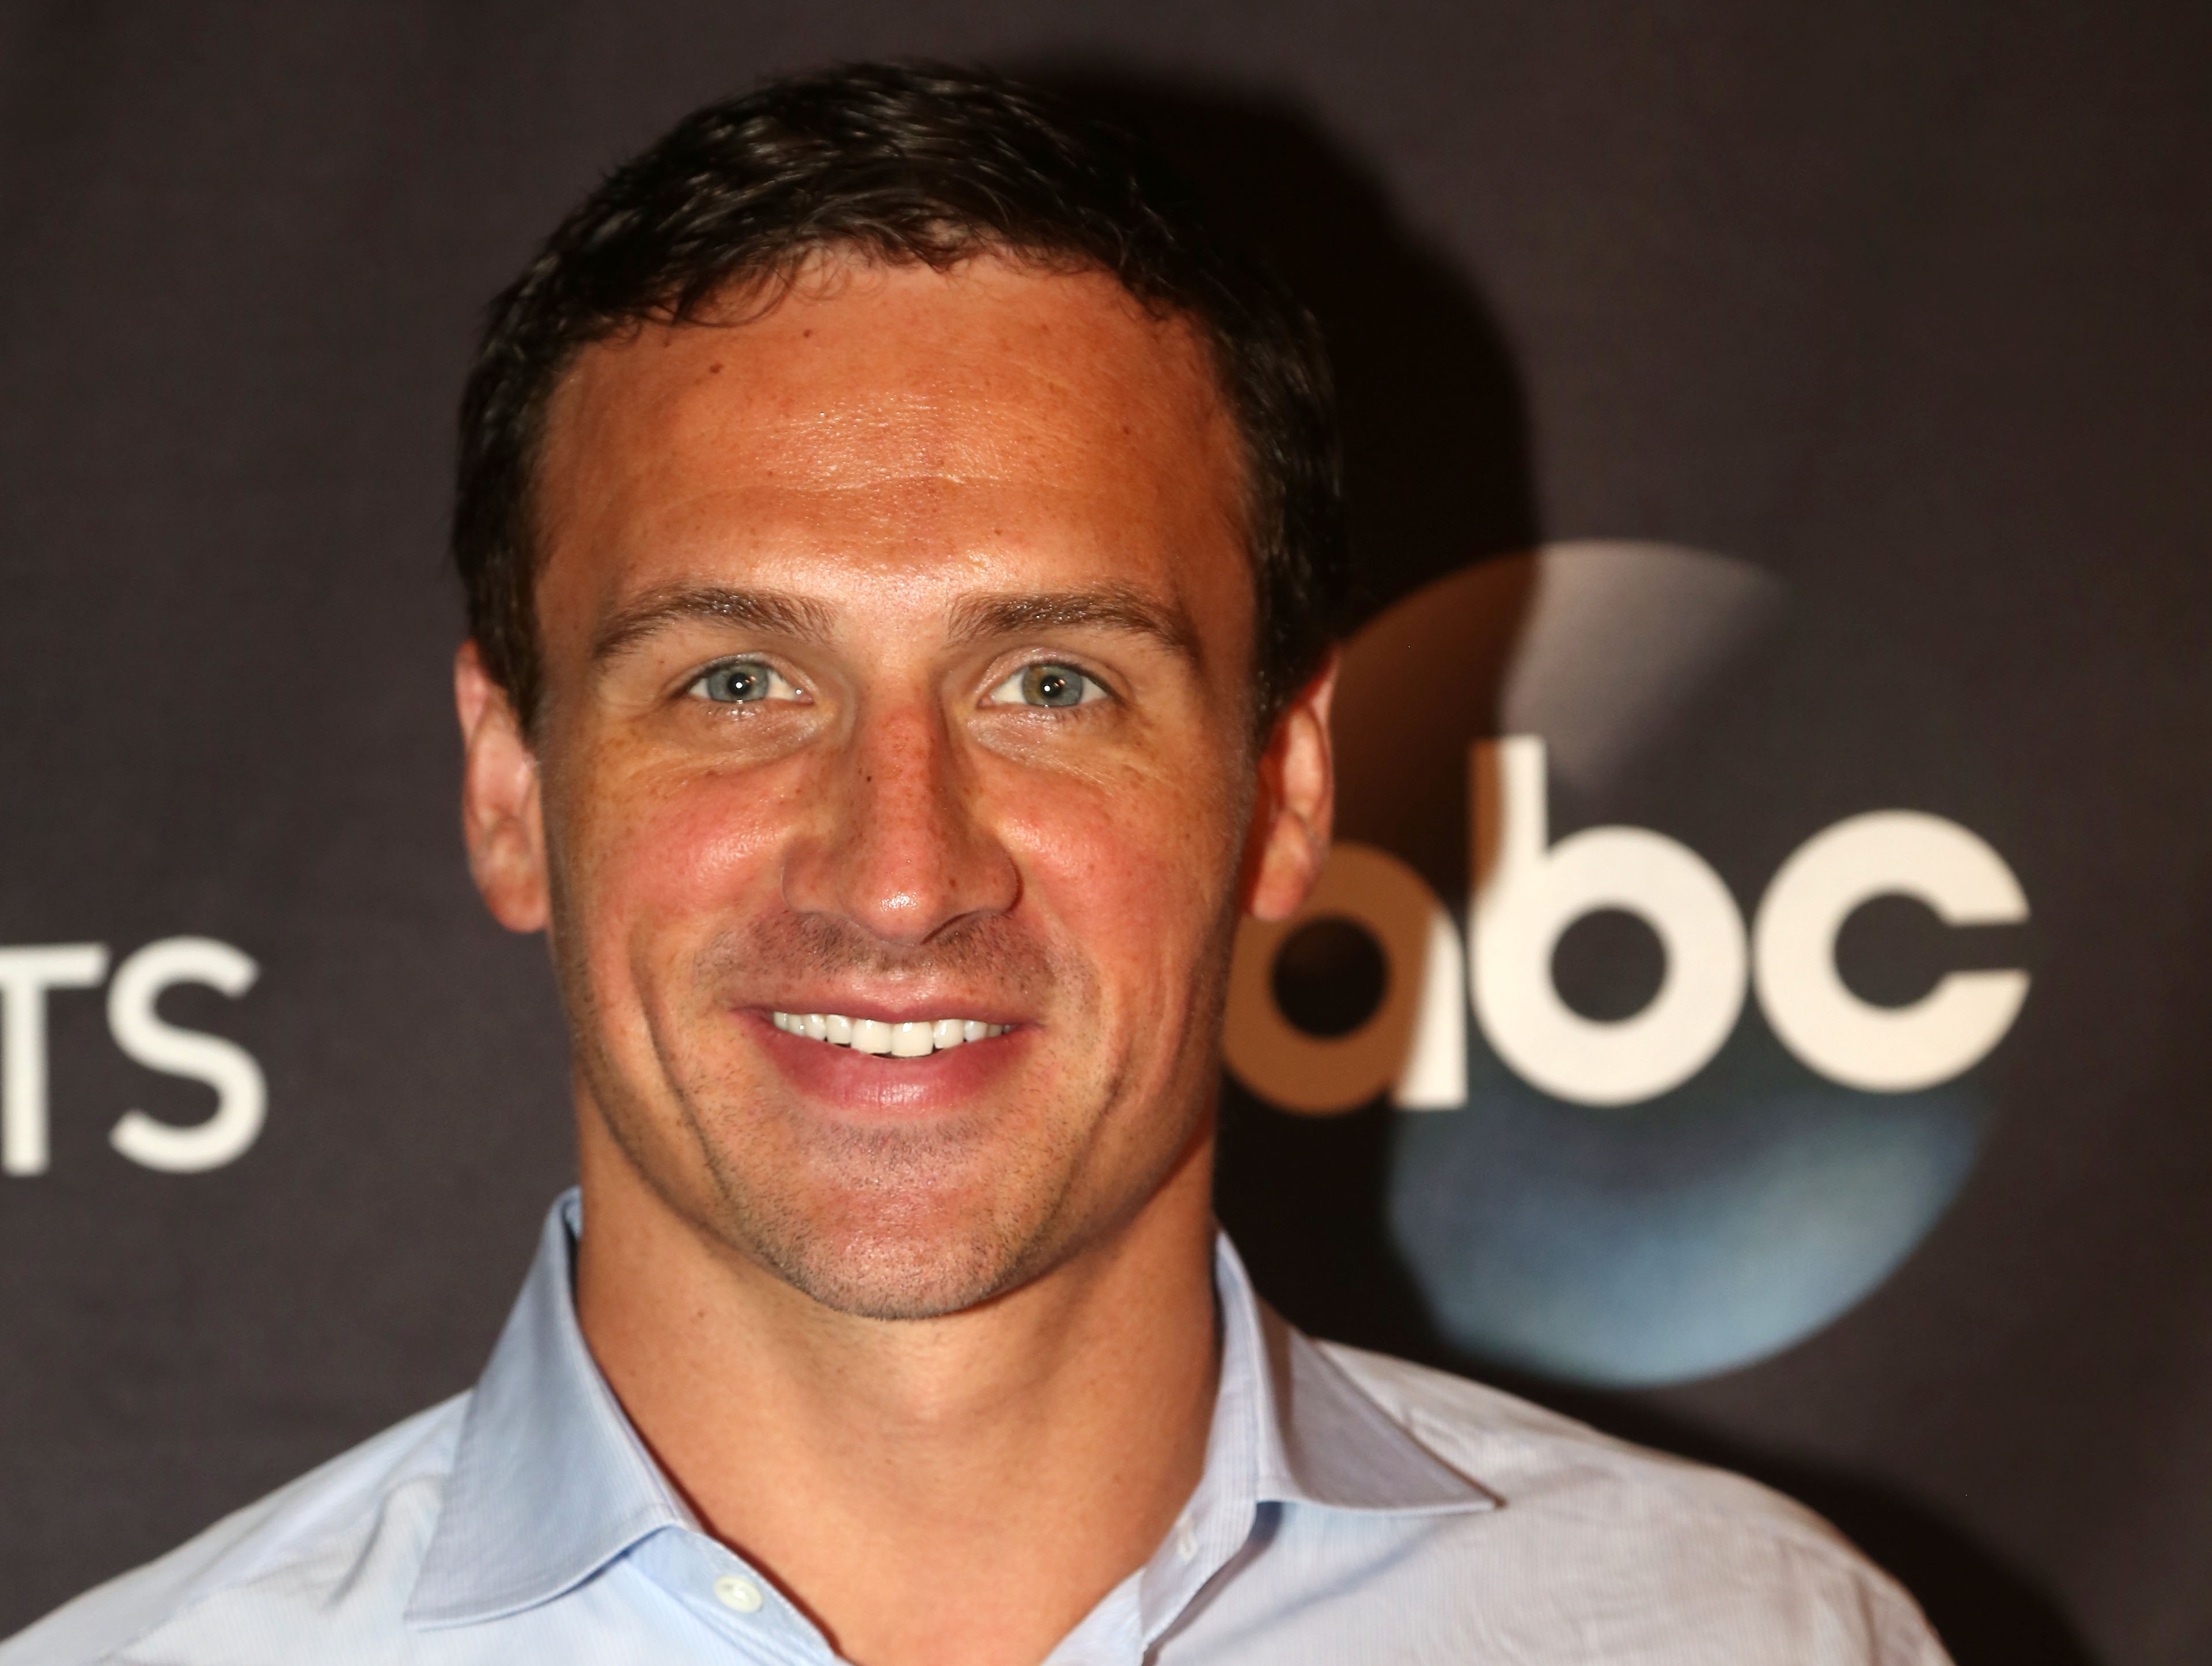 Ryan Lochte poses as Season 23 of  Dancing With The Stars  meets the press at Planet Hollywood Times Square on September 7, 2016 in New York City.